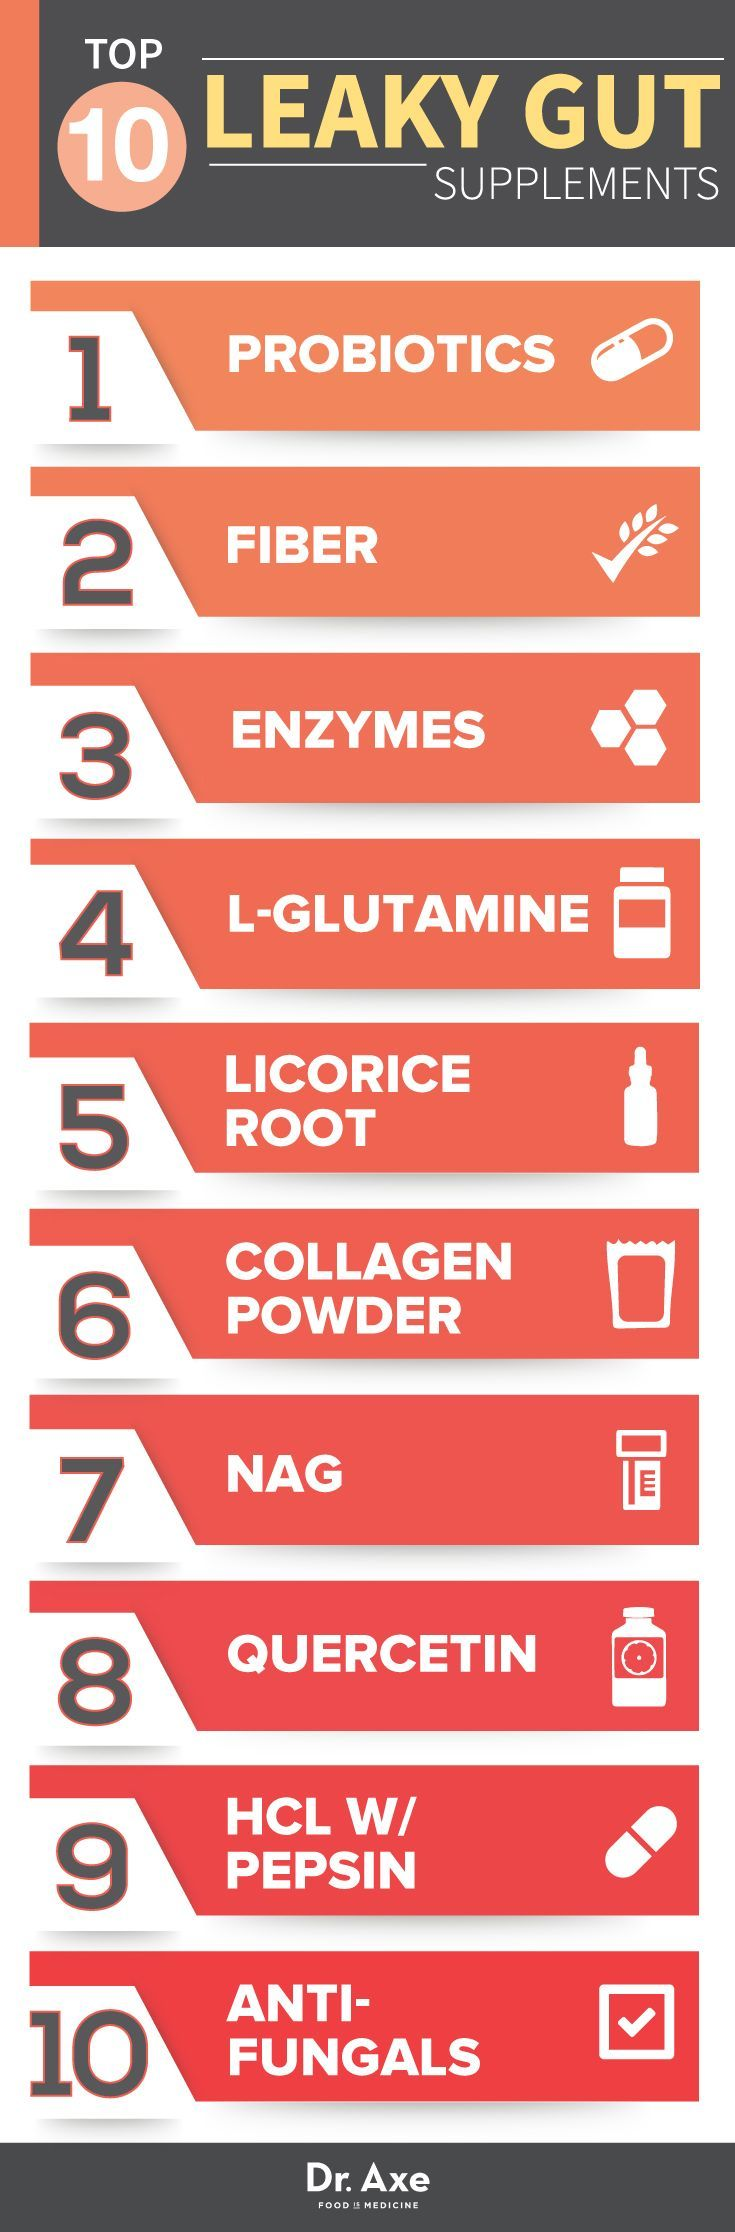 Top Leaky Gut Supplements http://draxe.com #health #holistic #natural